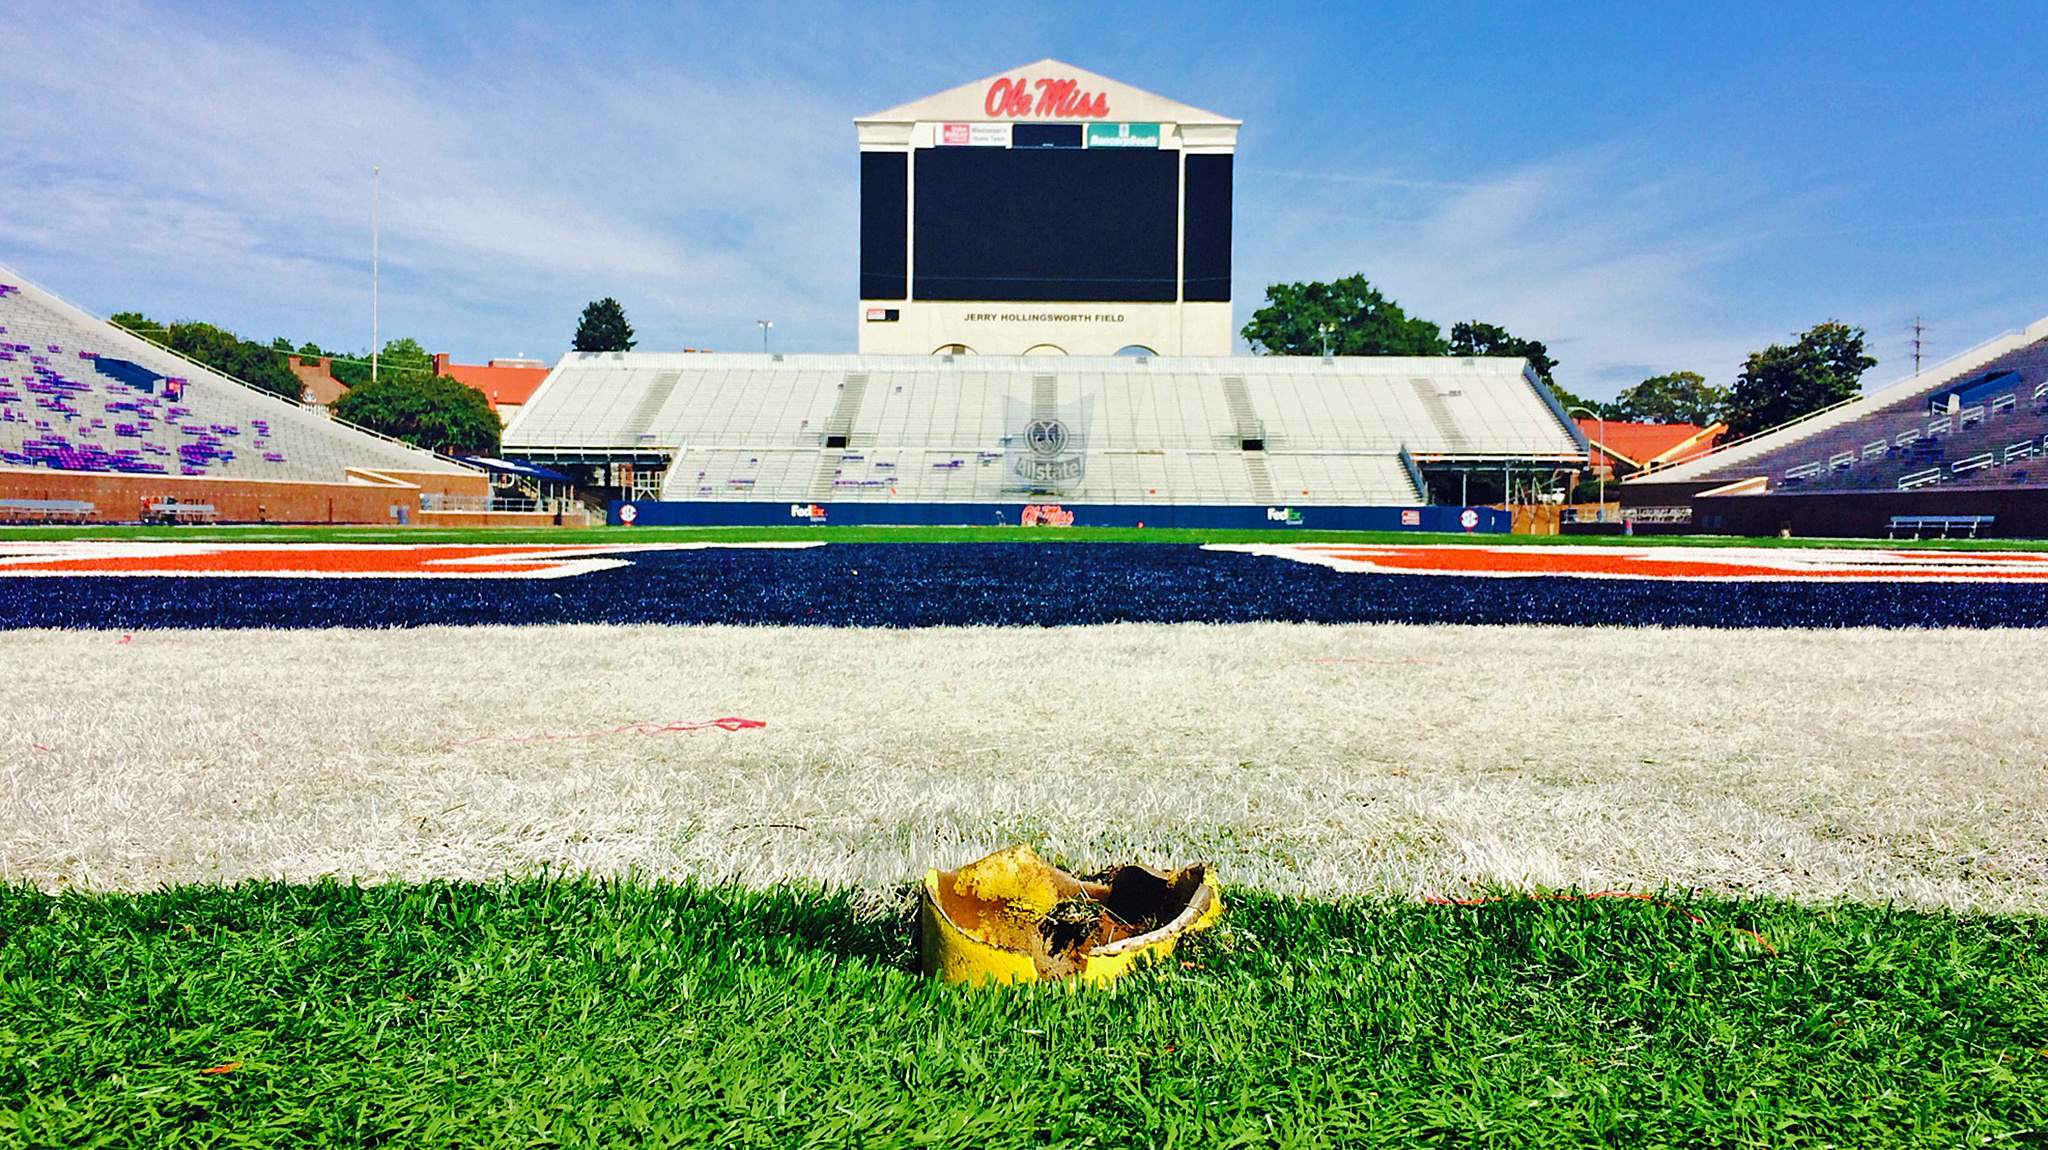 Ole miss gameday colors 2015 - Remnants Of The Goal Post Remain At Vaught Hemingway Stadium